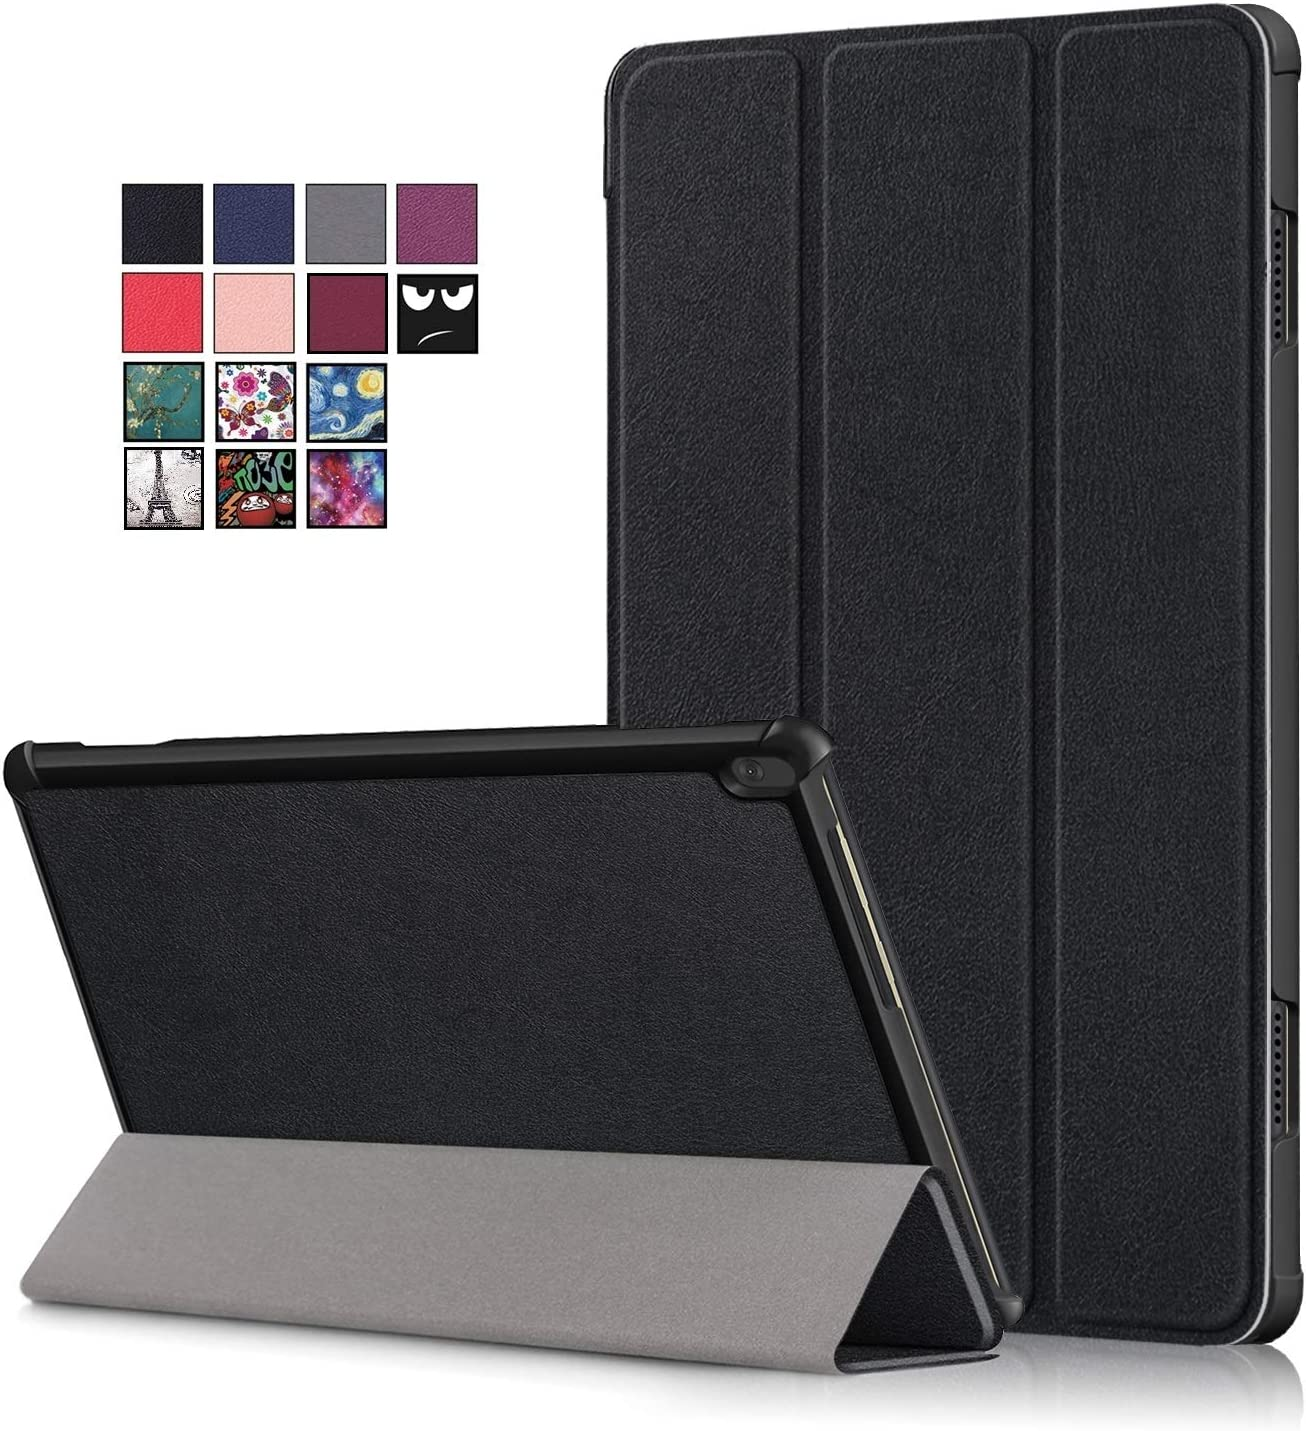 10.1 inch Tablet Case for Lenovo Tab M10 (TB-X505F/ TB-X605F), DETUOSI Ultra Slim Premium Folding Stand Cover Lenovo Tab M10 Case for Lenovo 10.1 inch Tablet Model: 2019 TB-X505F & 2018 TB-X605F,Black